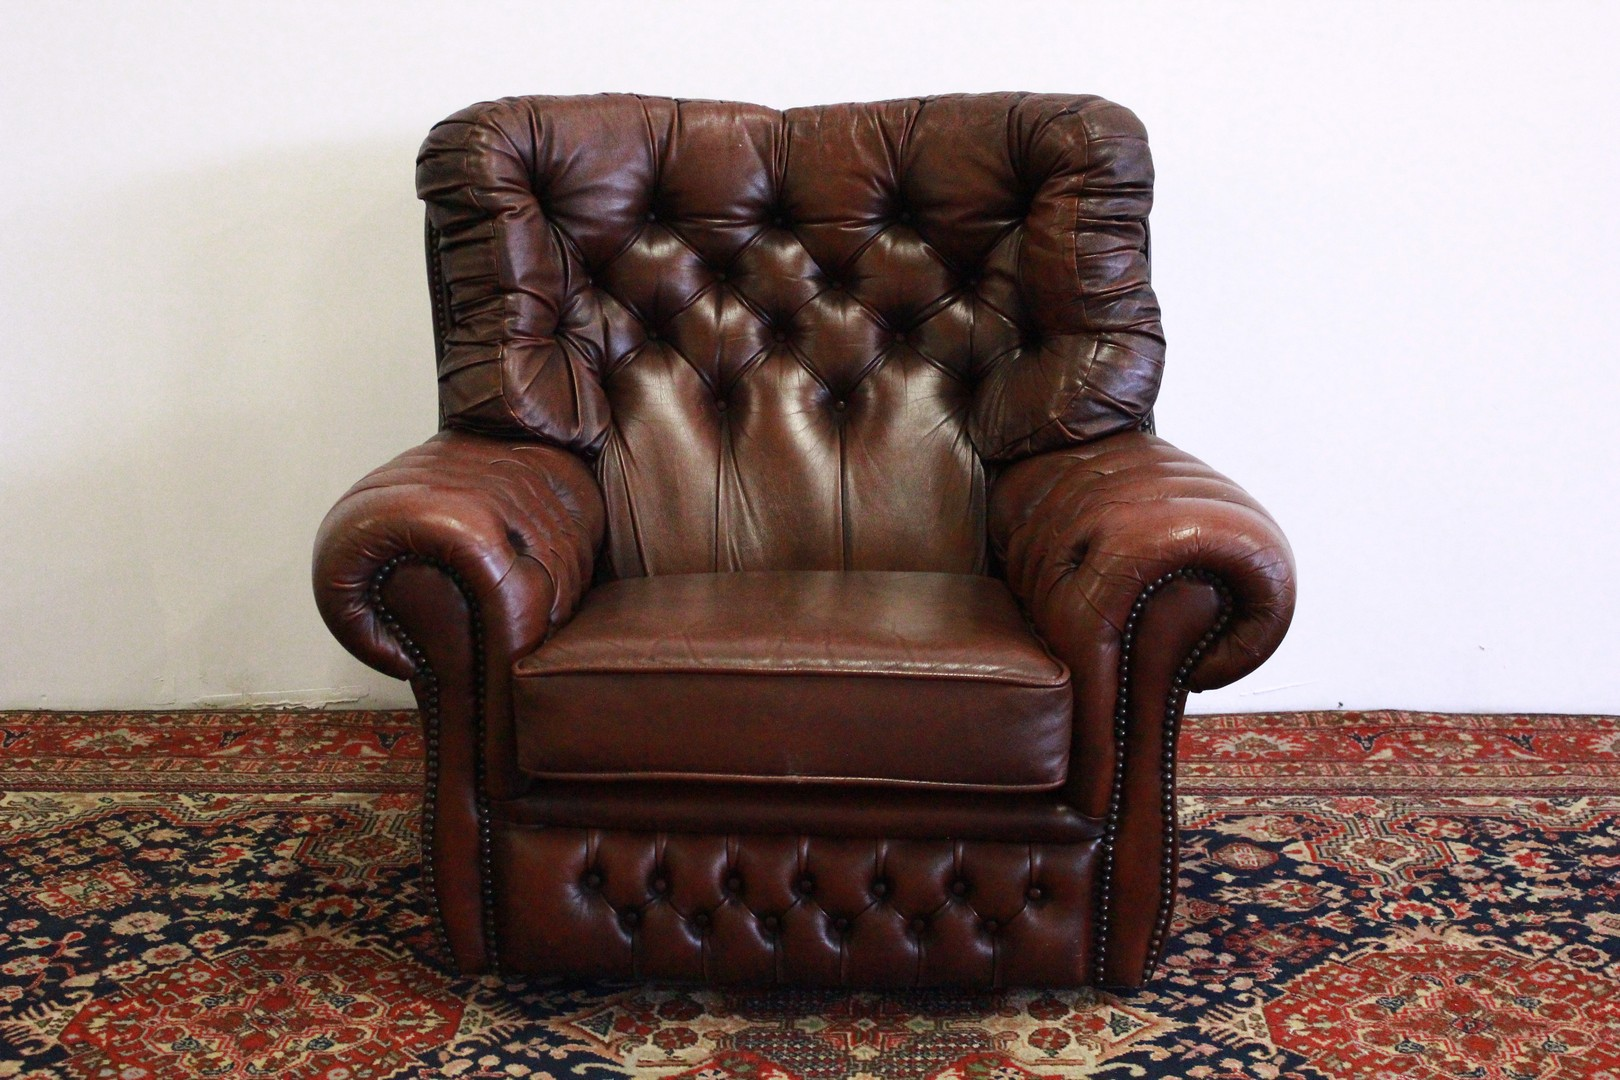 Poltrone Bergere In Pelle.Poltrona Chesterfield Bergere In Pelle Marrone 711 Divani